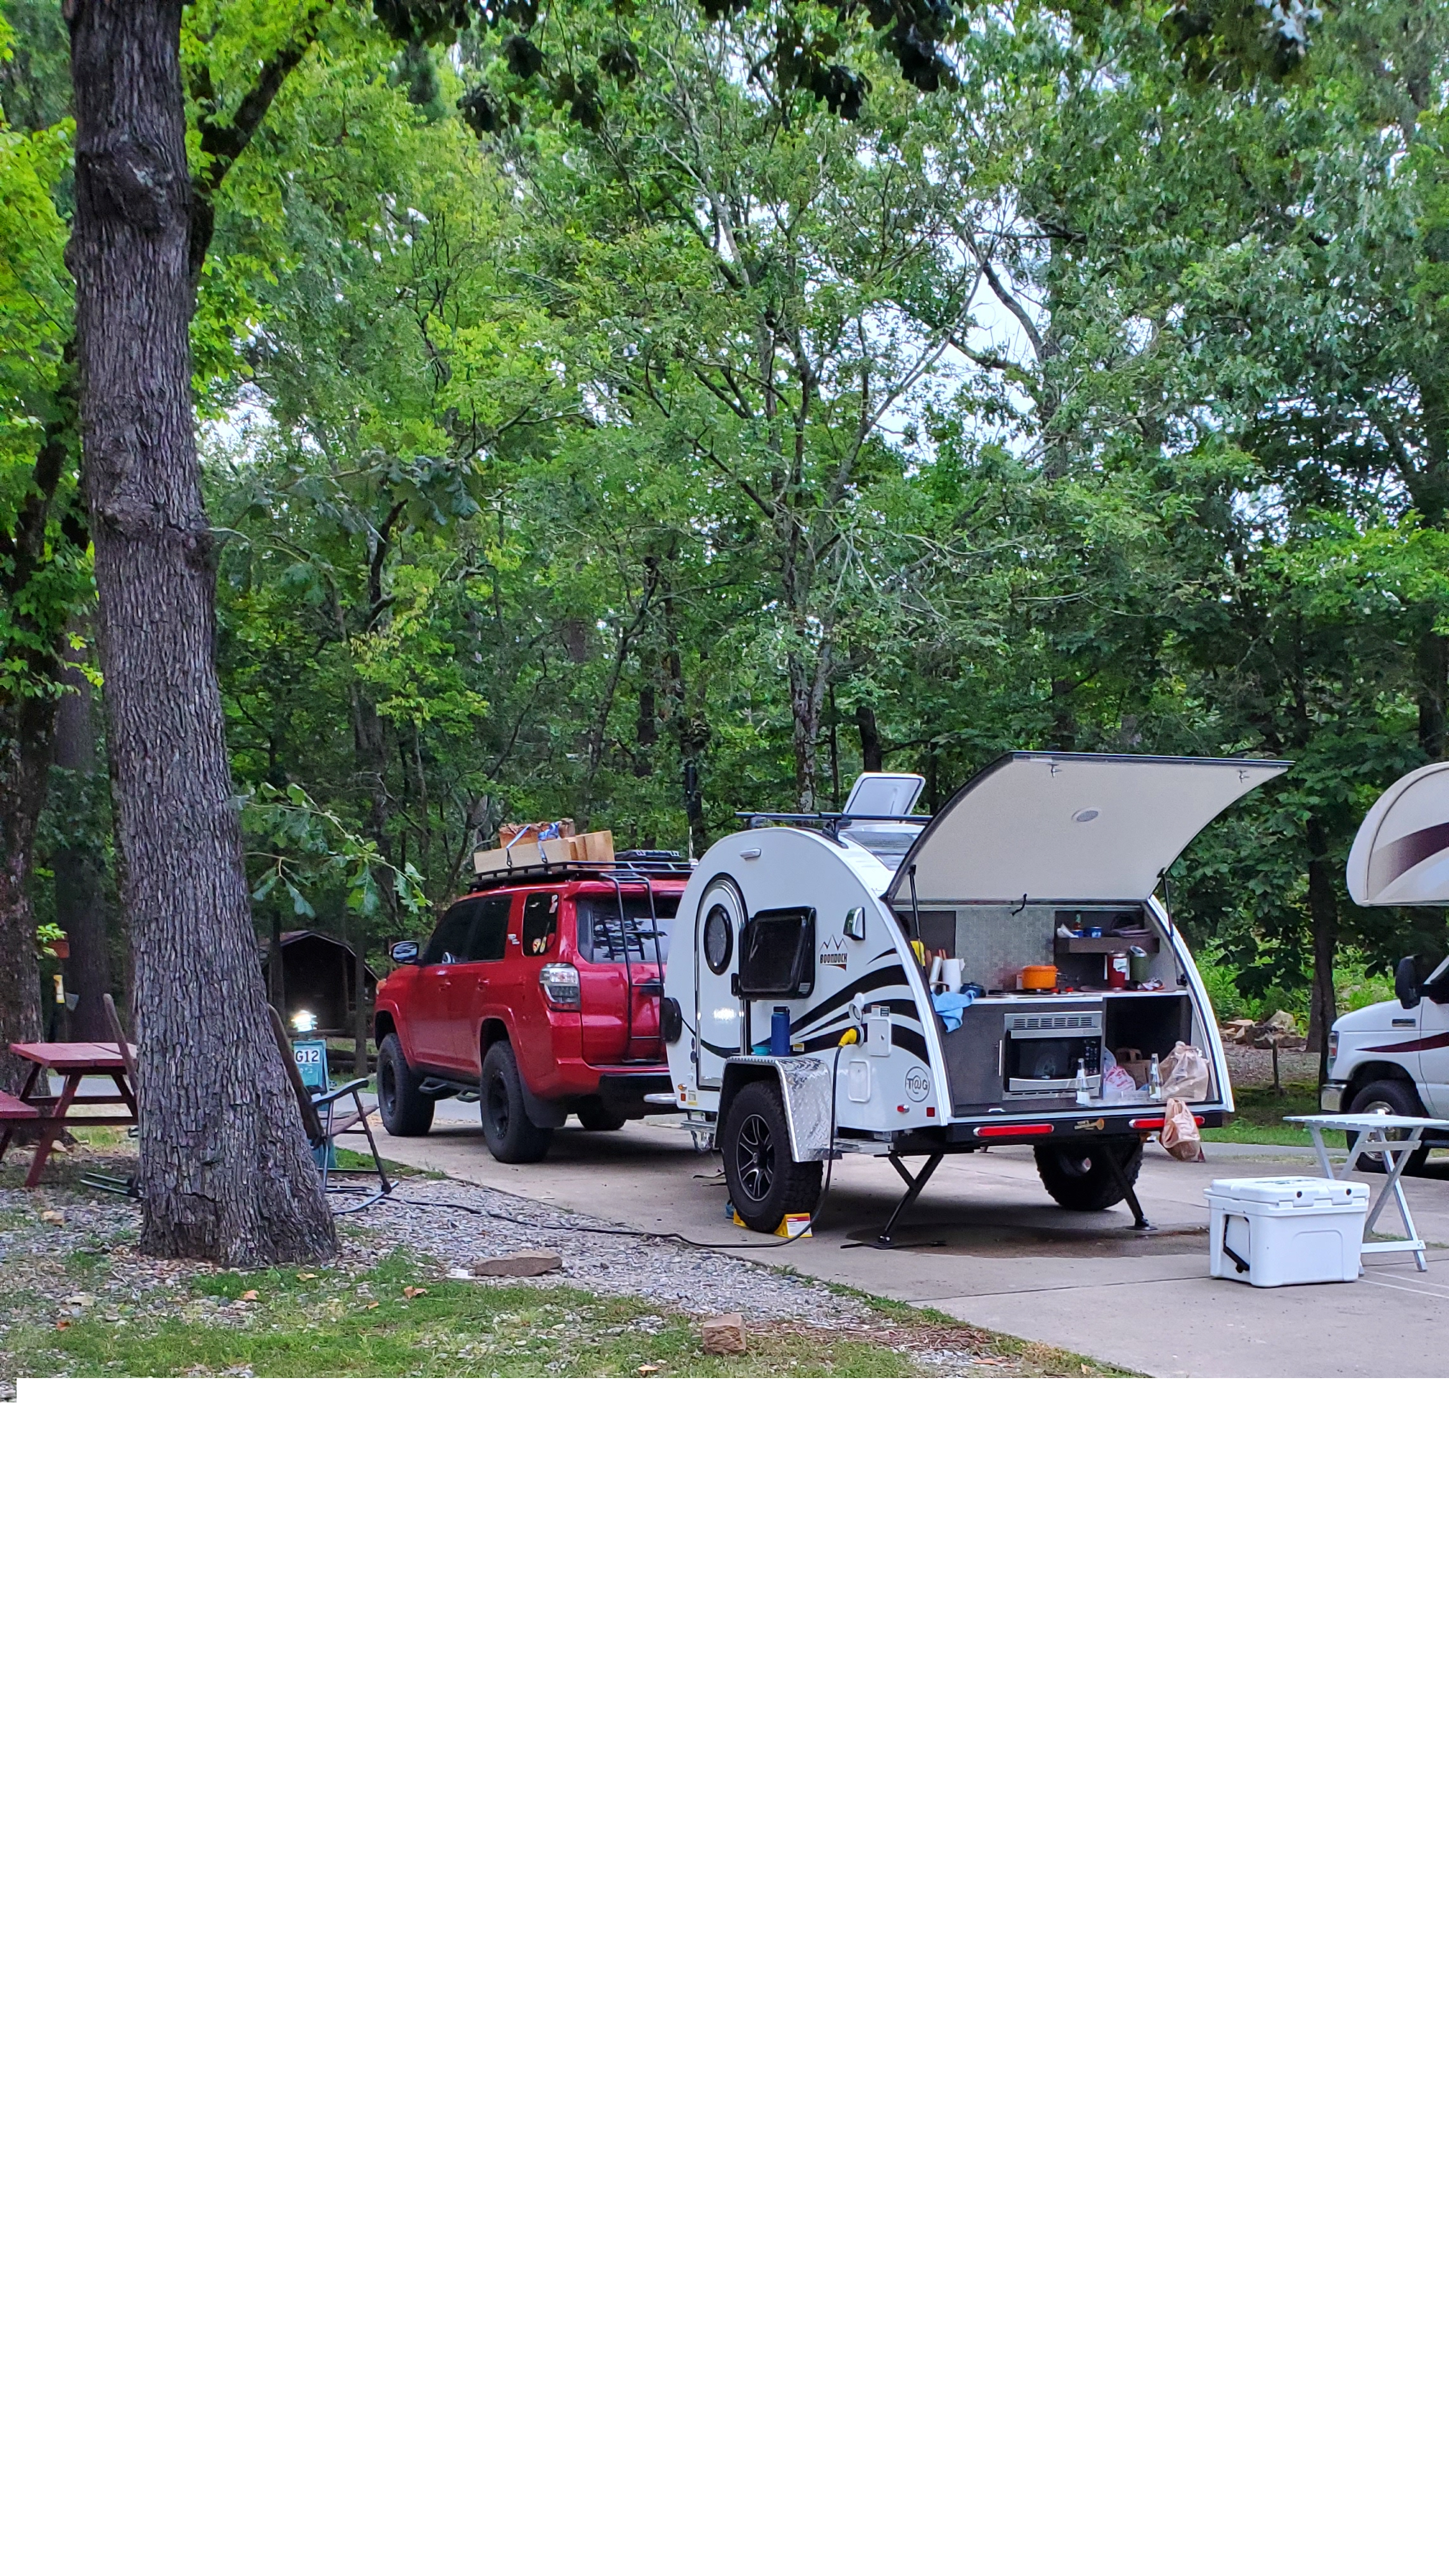 We drove to TN and stayed at KOA's along the way from AZ. T@B Other 2021